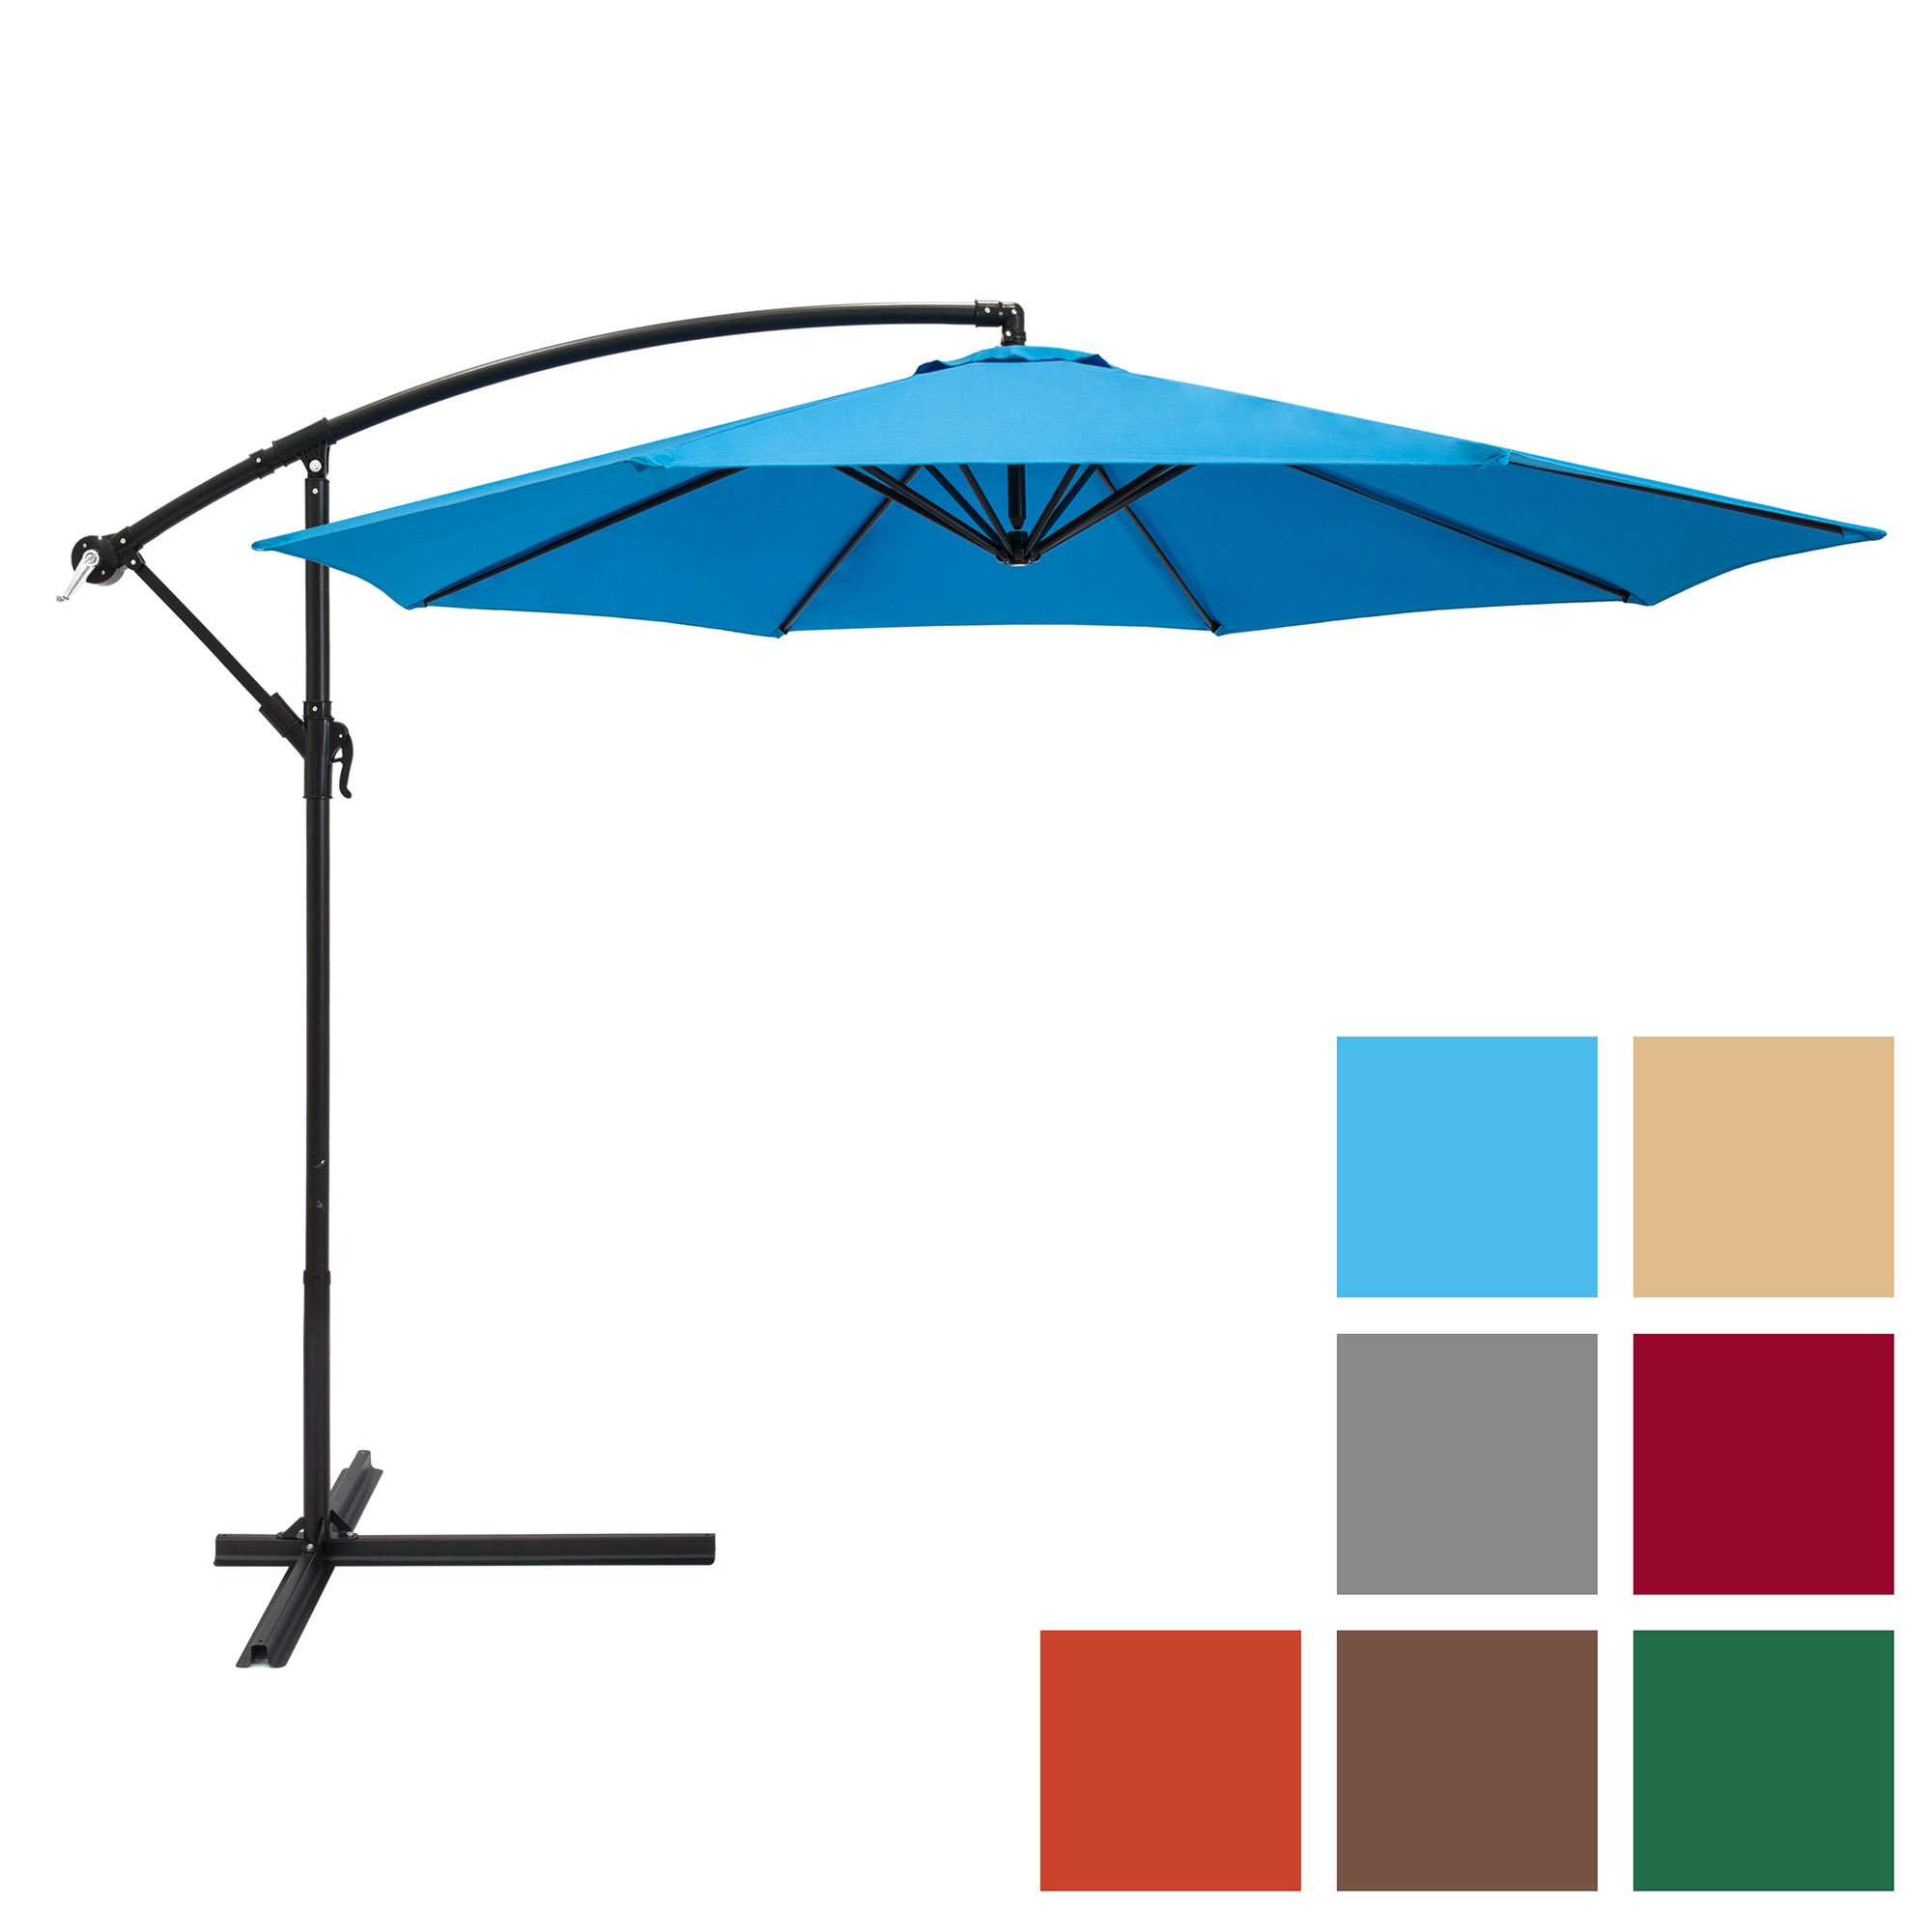 Best Choice Products 10ft Offset Hanging Outdoor Market Patio Umbrella w/Easy Tilt Adjustment - Blue by Best Choice Products